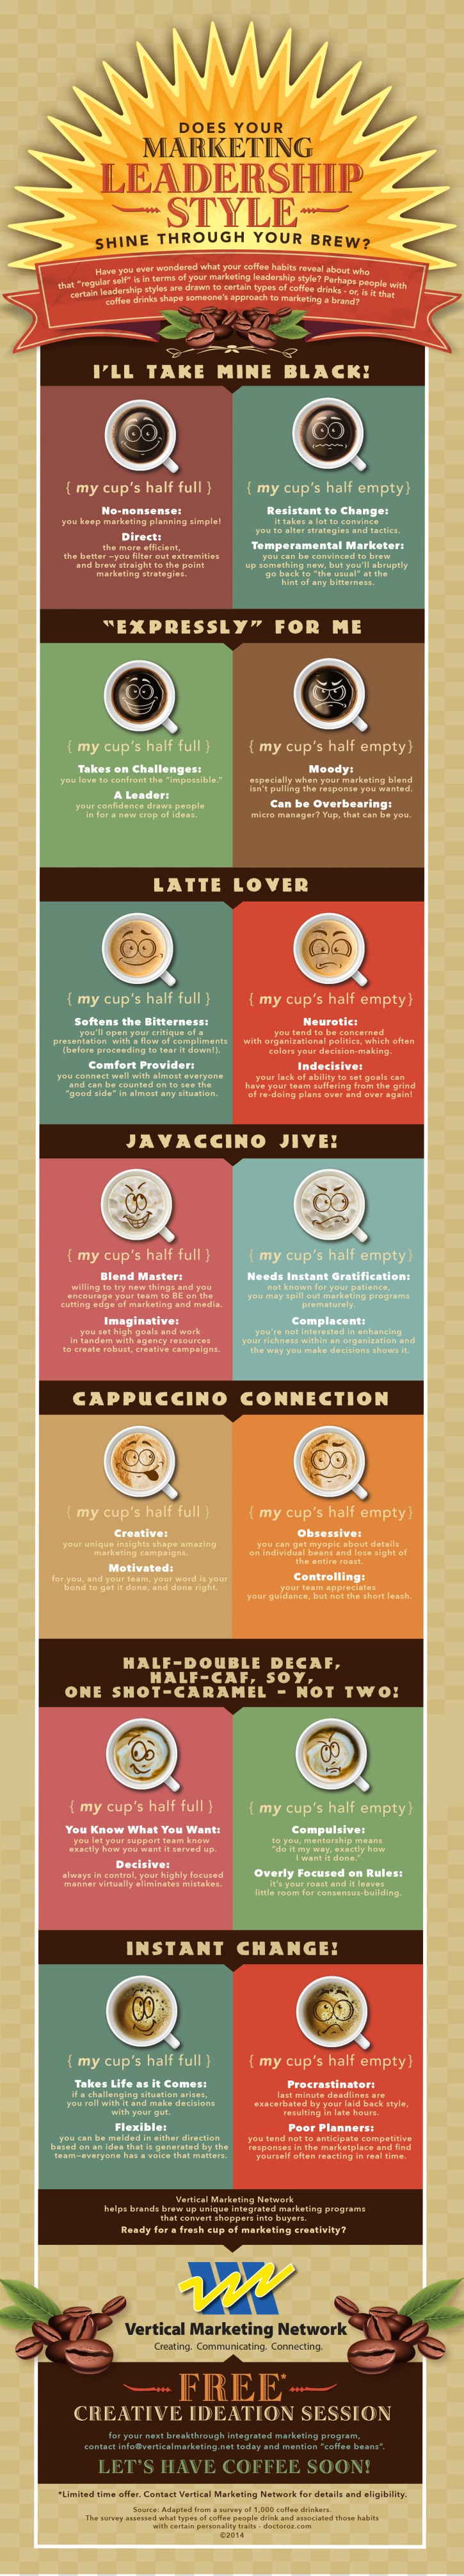 VM14_Coffee-Infographic_SM_8.5.14